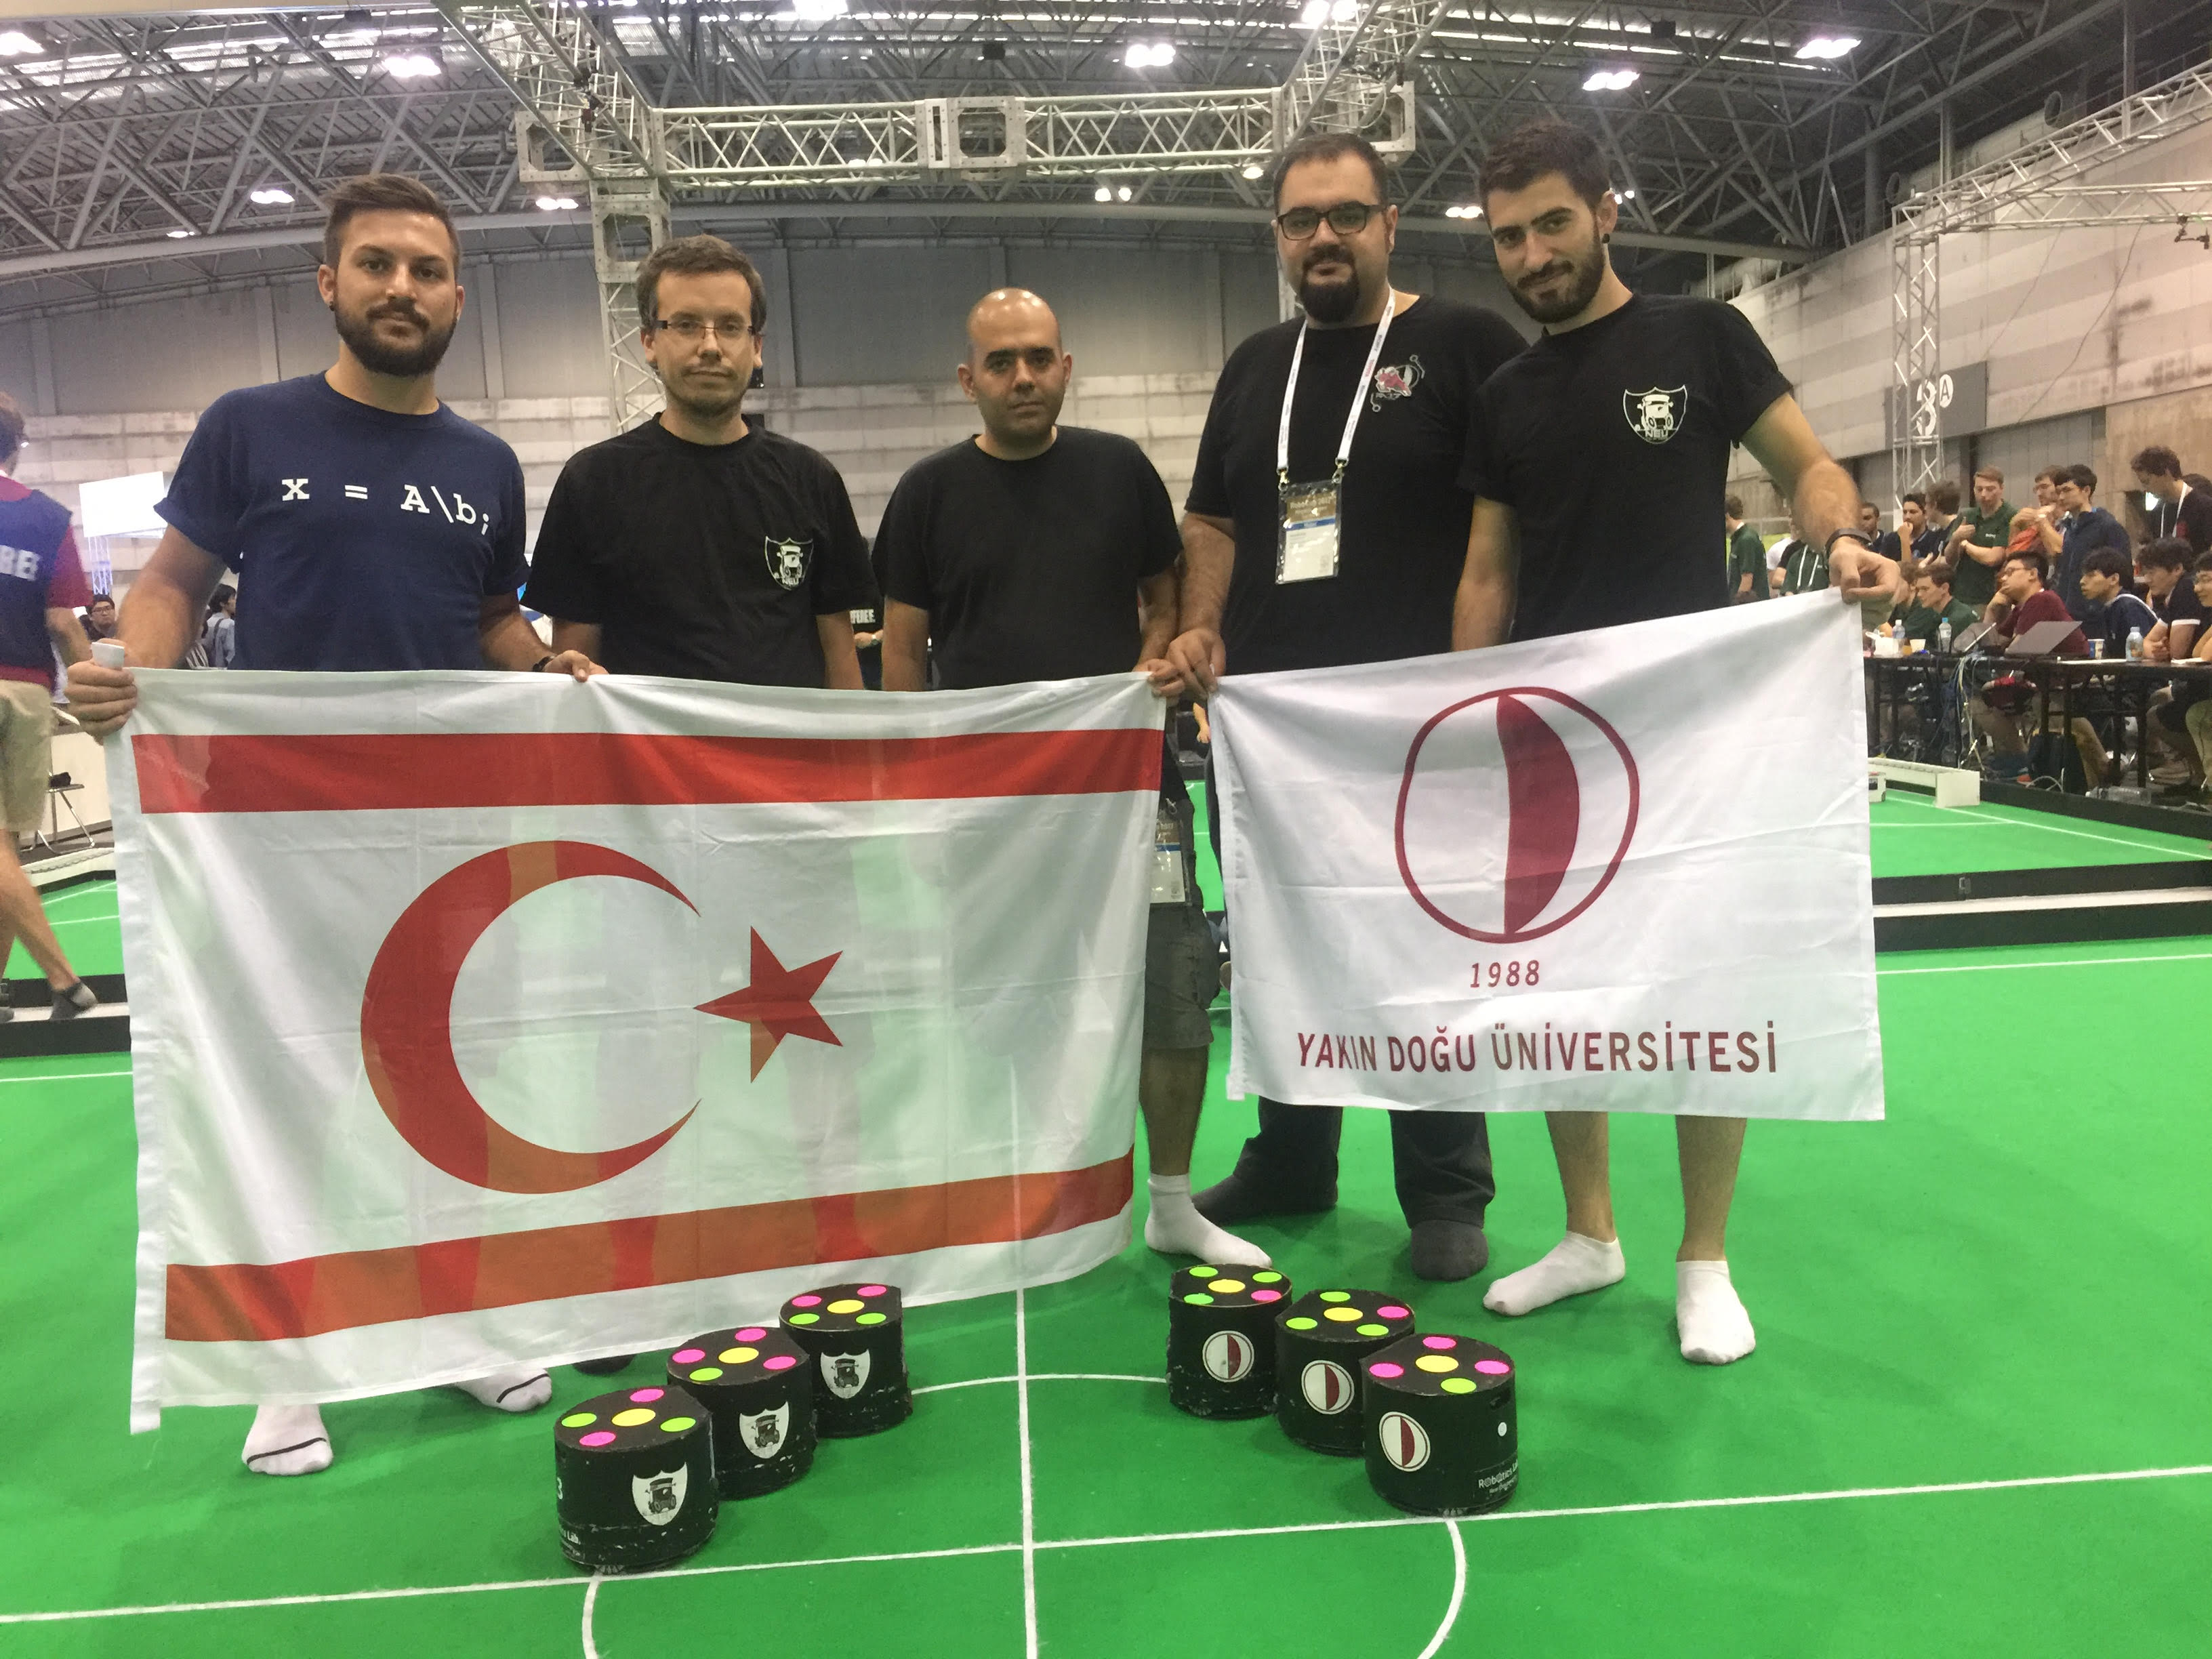 NEUIslanders has become the world's best 9th team in Robotic Soccer